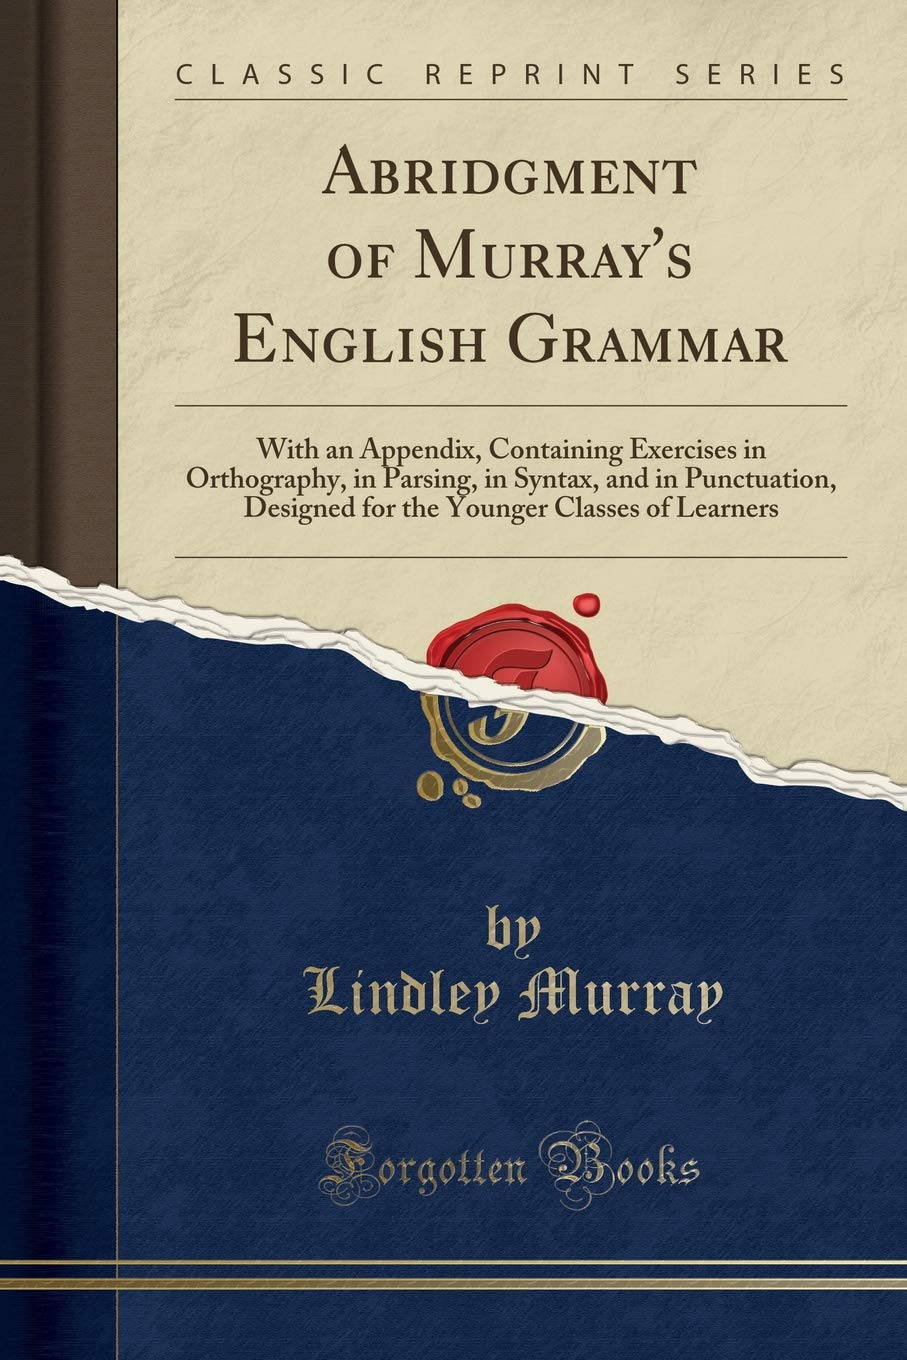 Abridgment of Murray's English Grammar: With an Appendix